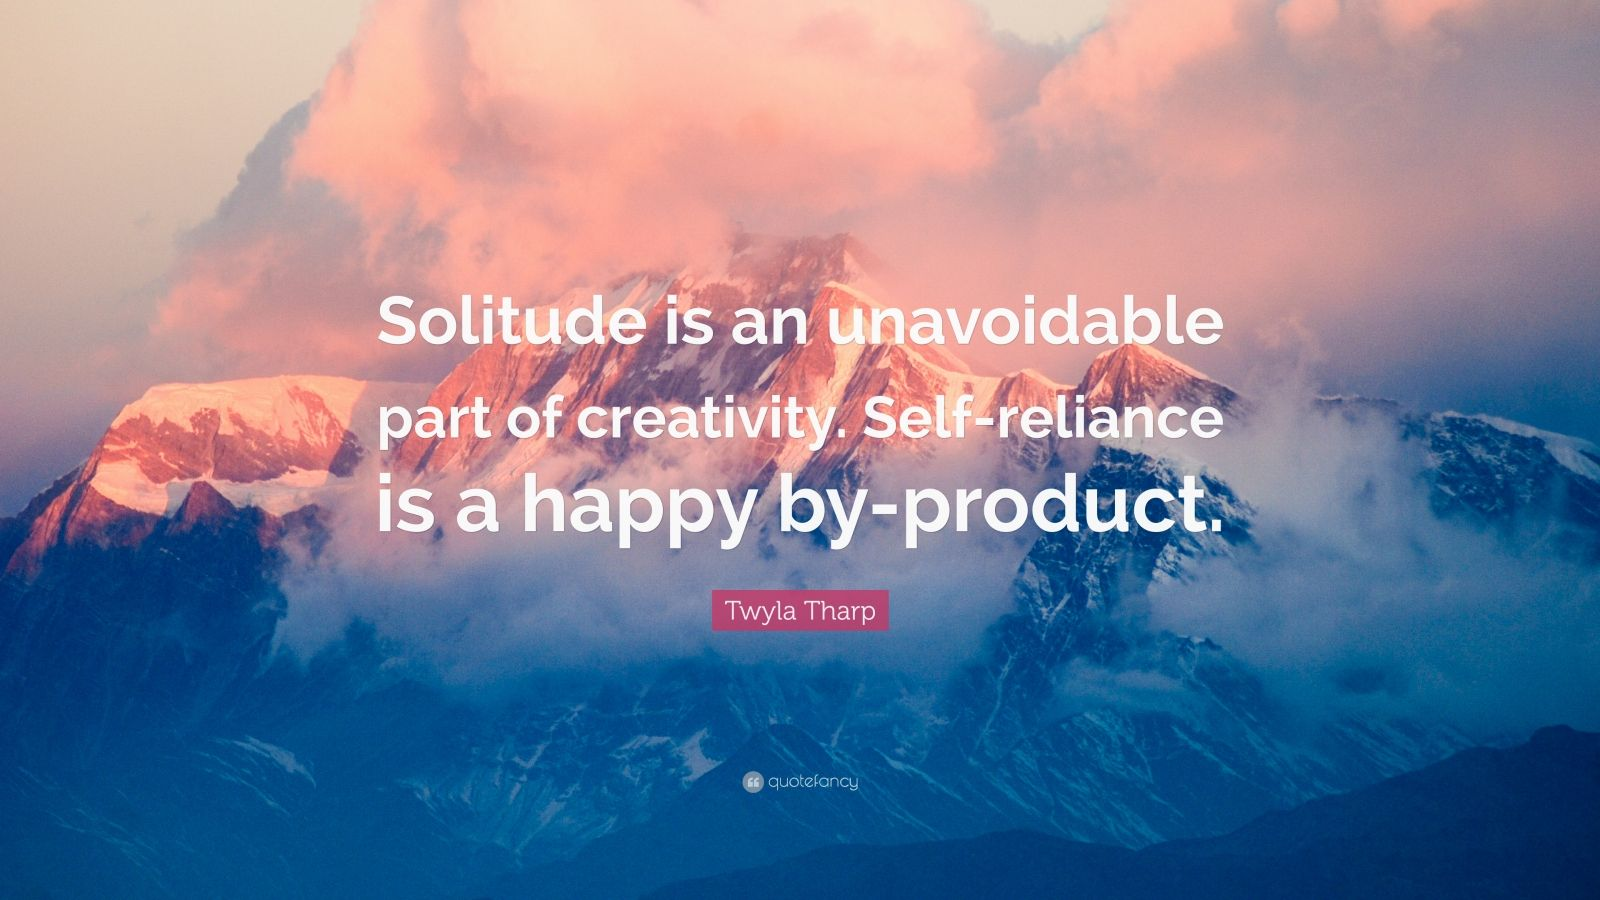 """Twyla Tharp Quote: """"Solitude is an unavoidable part of creativity. Self-reliance is a happy by-product."""""""